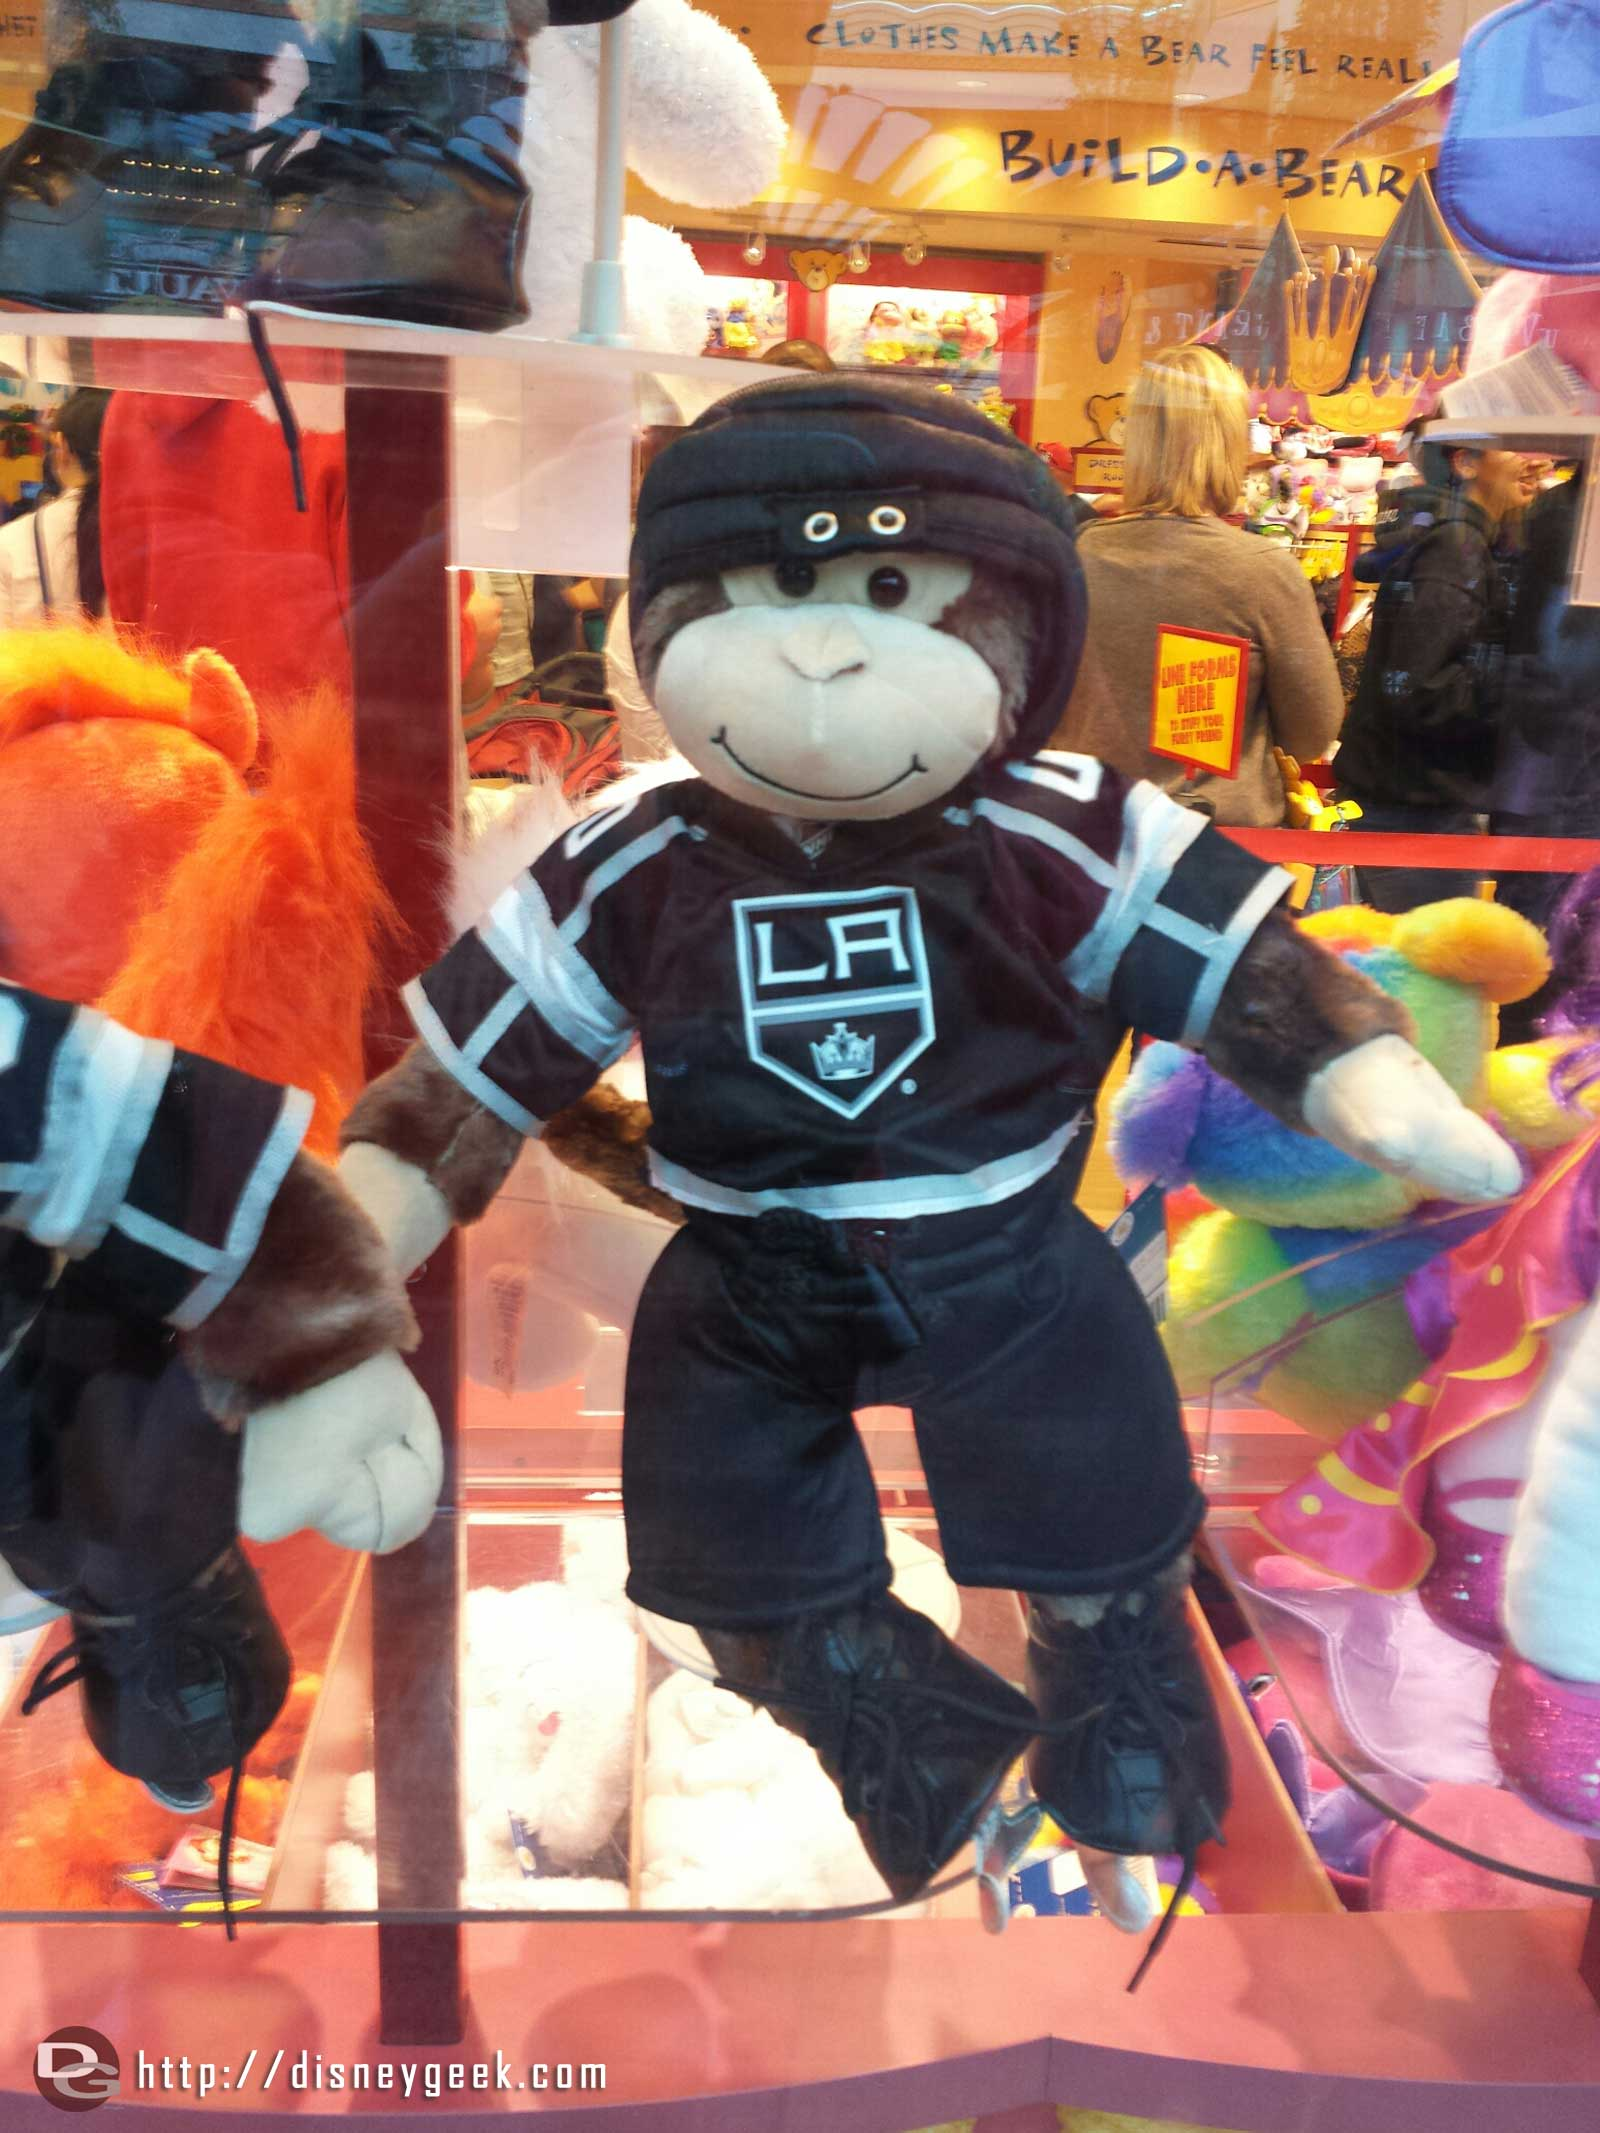 Build-a-Bear supporting the LA Kings with a monkey